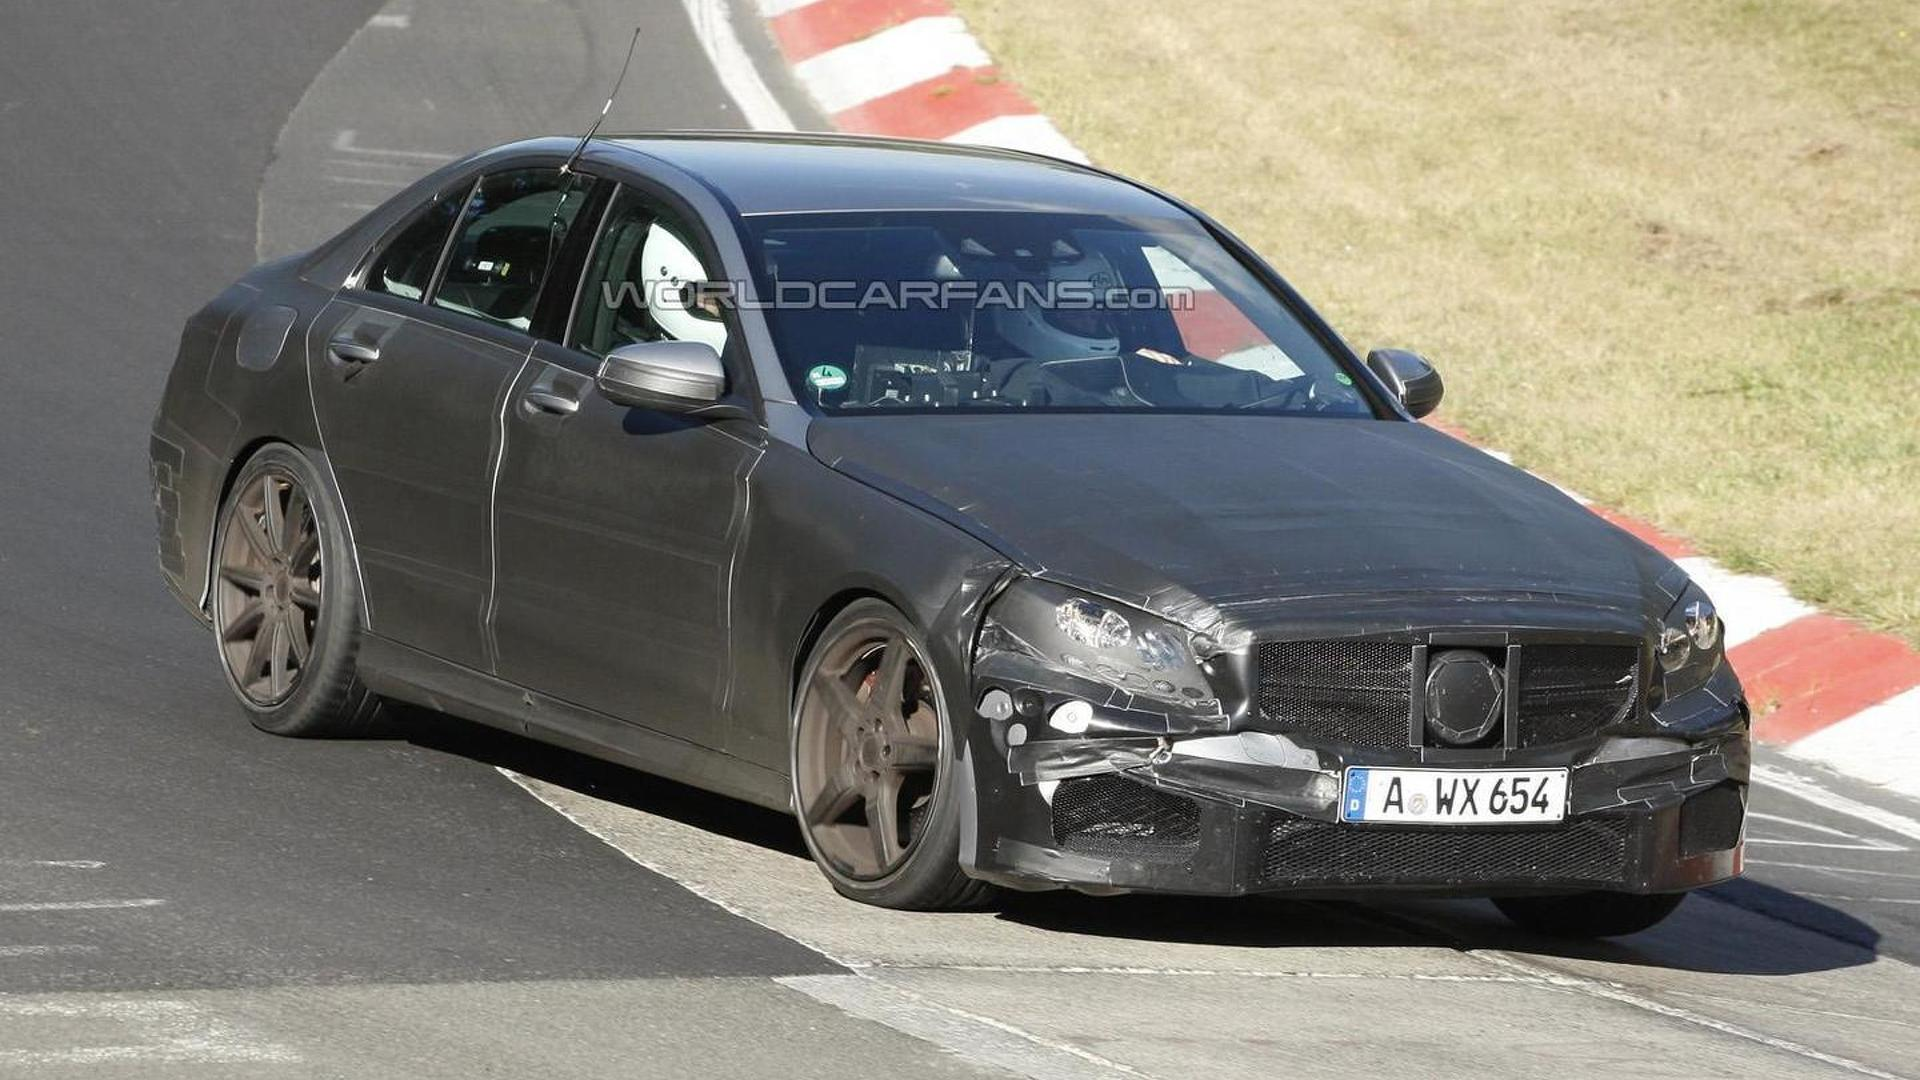 AMG CEO hints at 485-500 HP rating for next-generation C-Class AMG